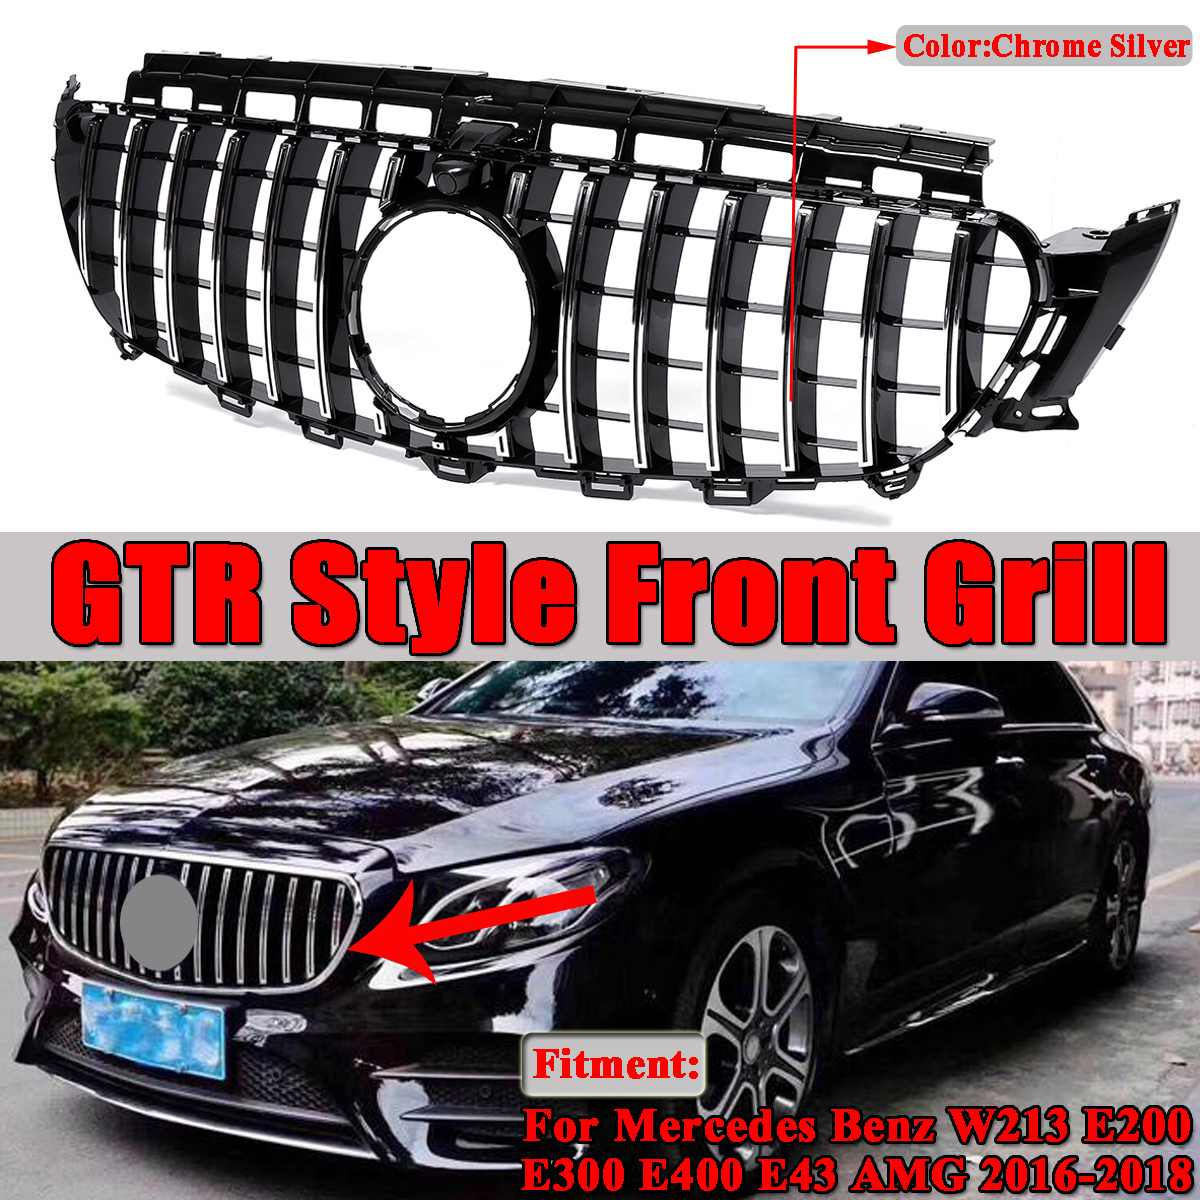 Mercedes E Class AMG W213 Front GTR Style Grill 2016-2019